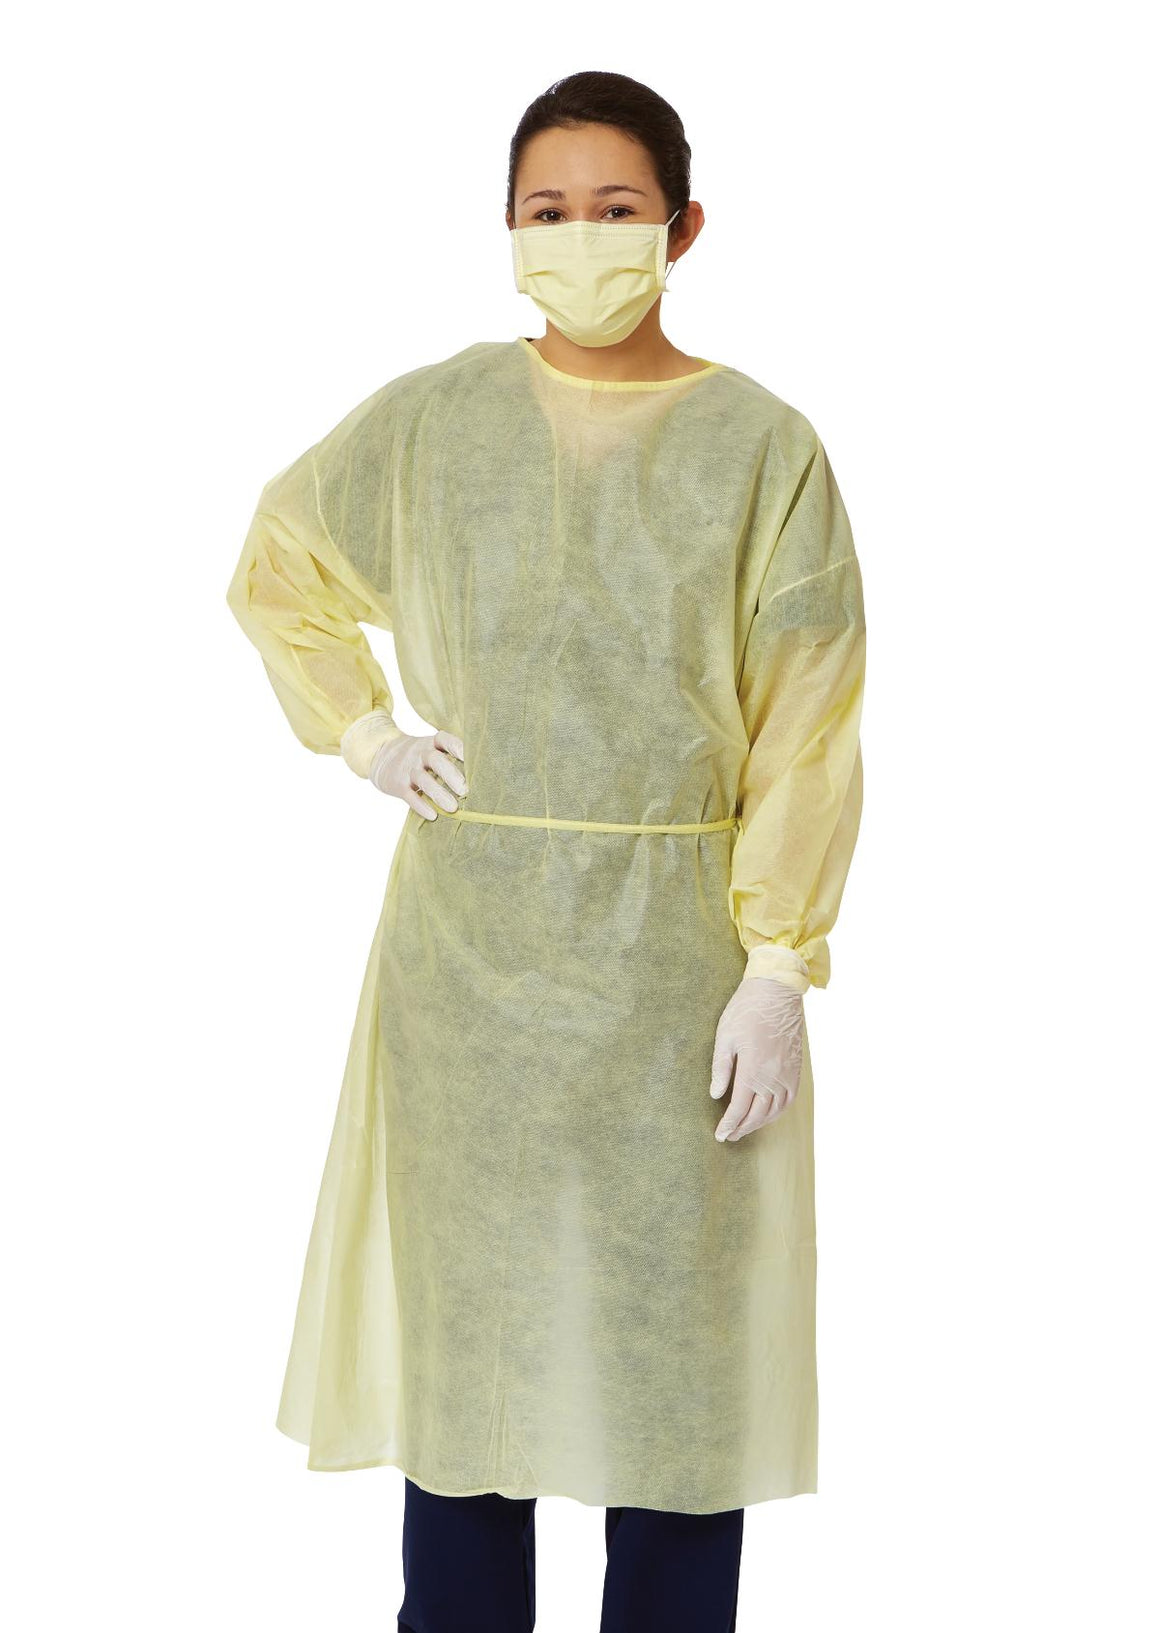 Medium Weight Multi-Ply Fluid Resistant Isolation Gown,Yellow,Regular/Large, Cas